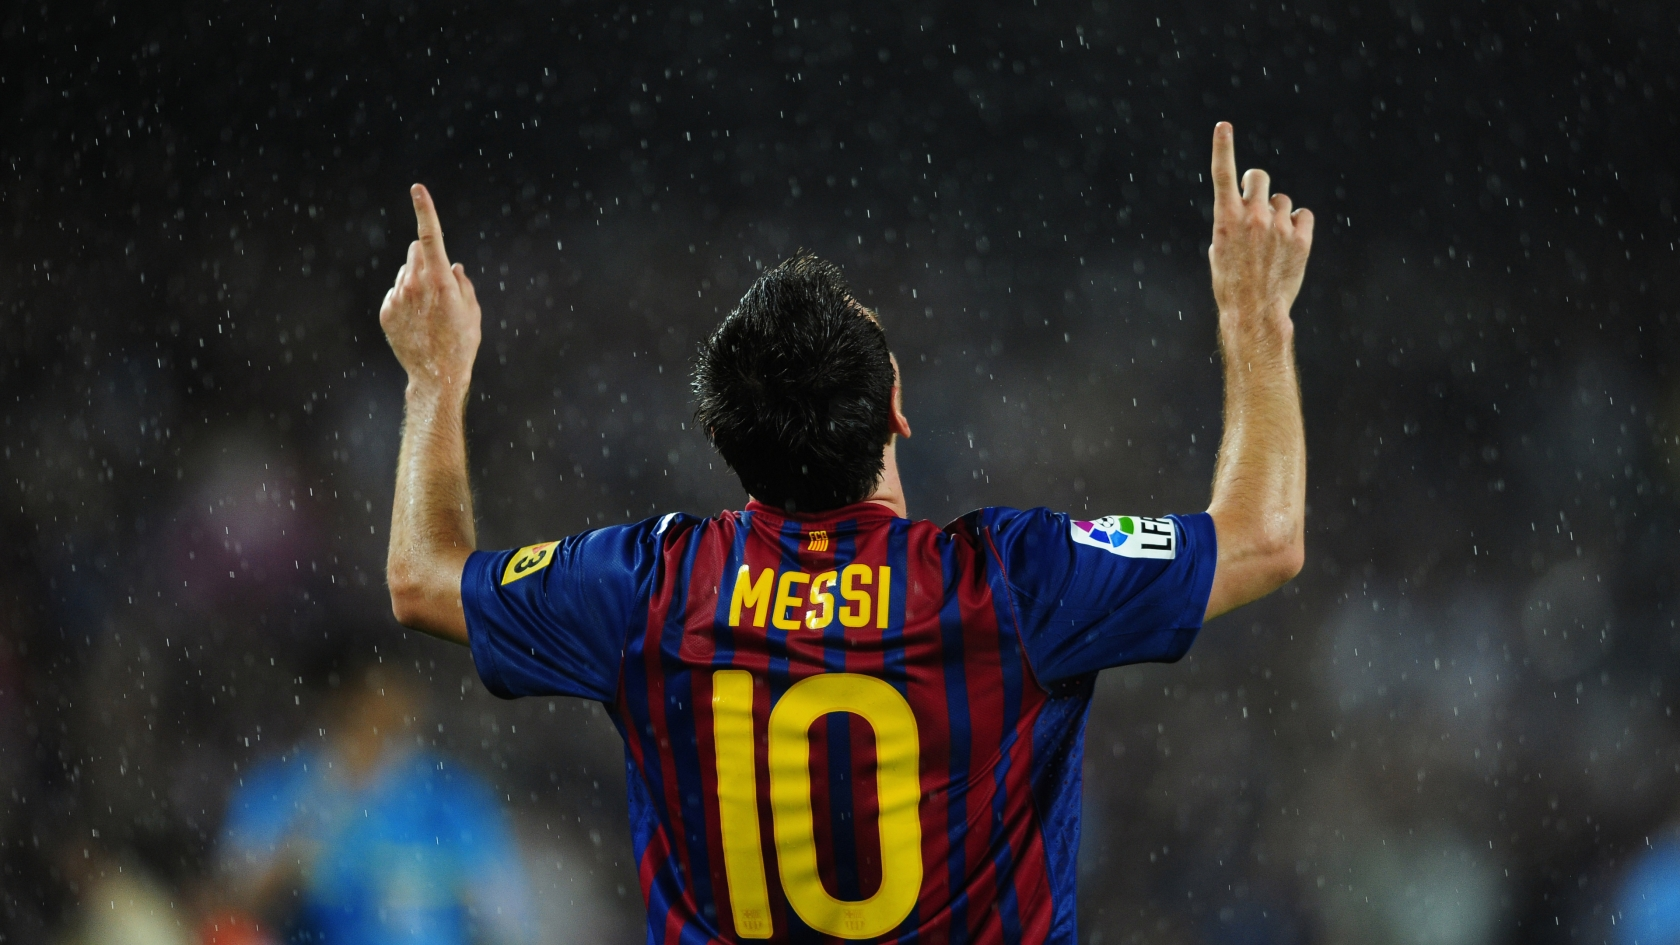 Lionel Messi in Rain for 1680 x 945 HDTV resolution